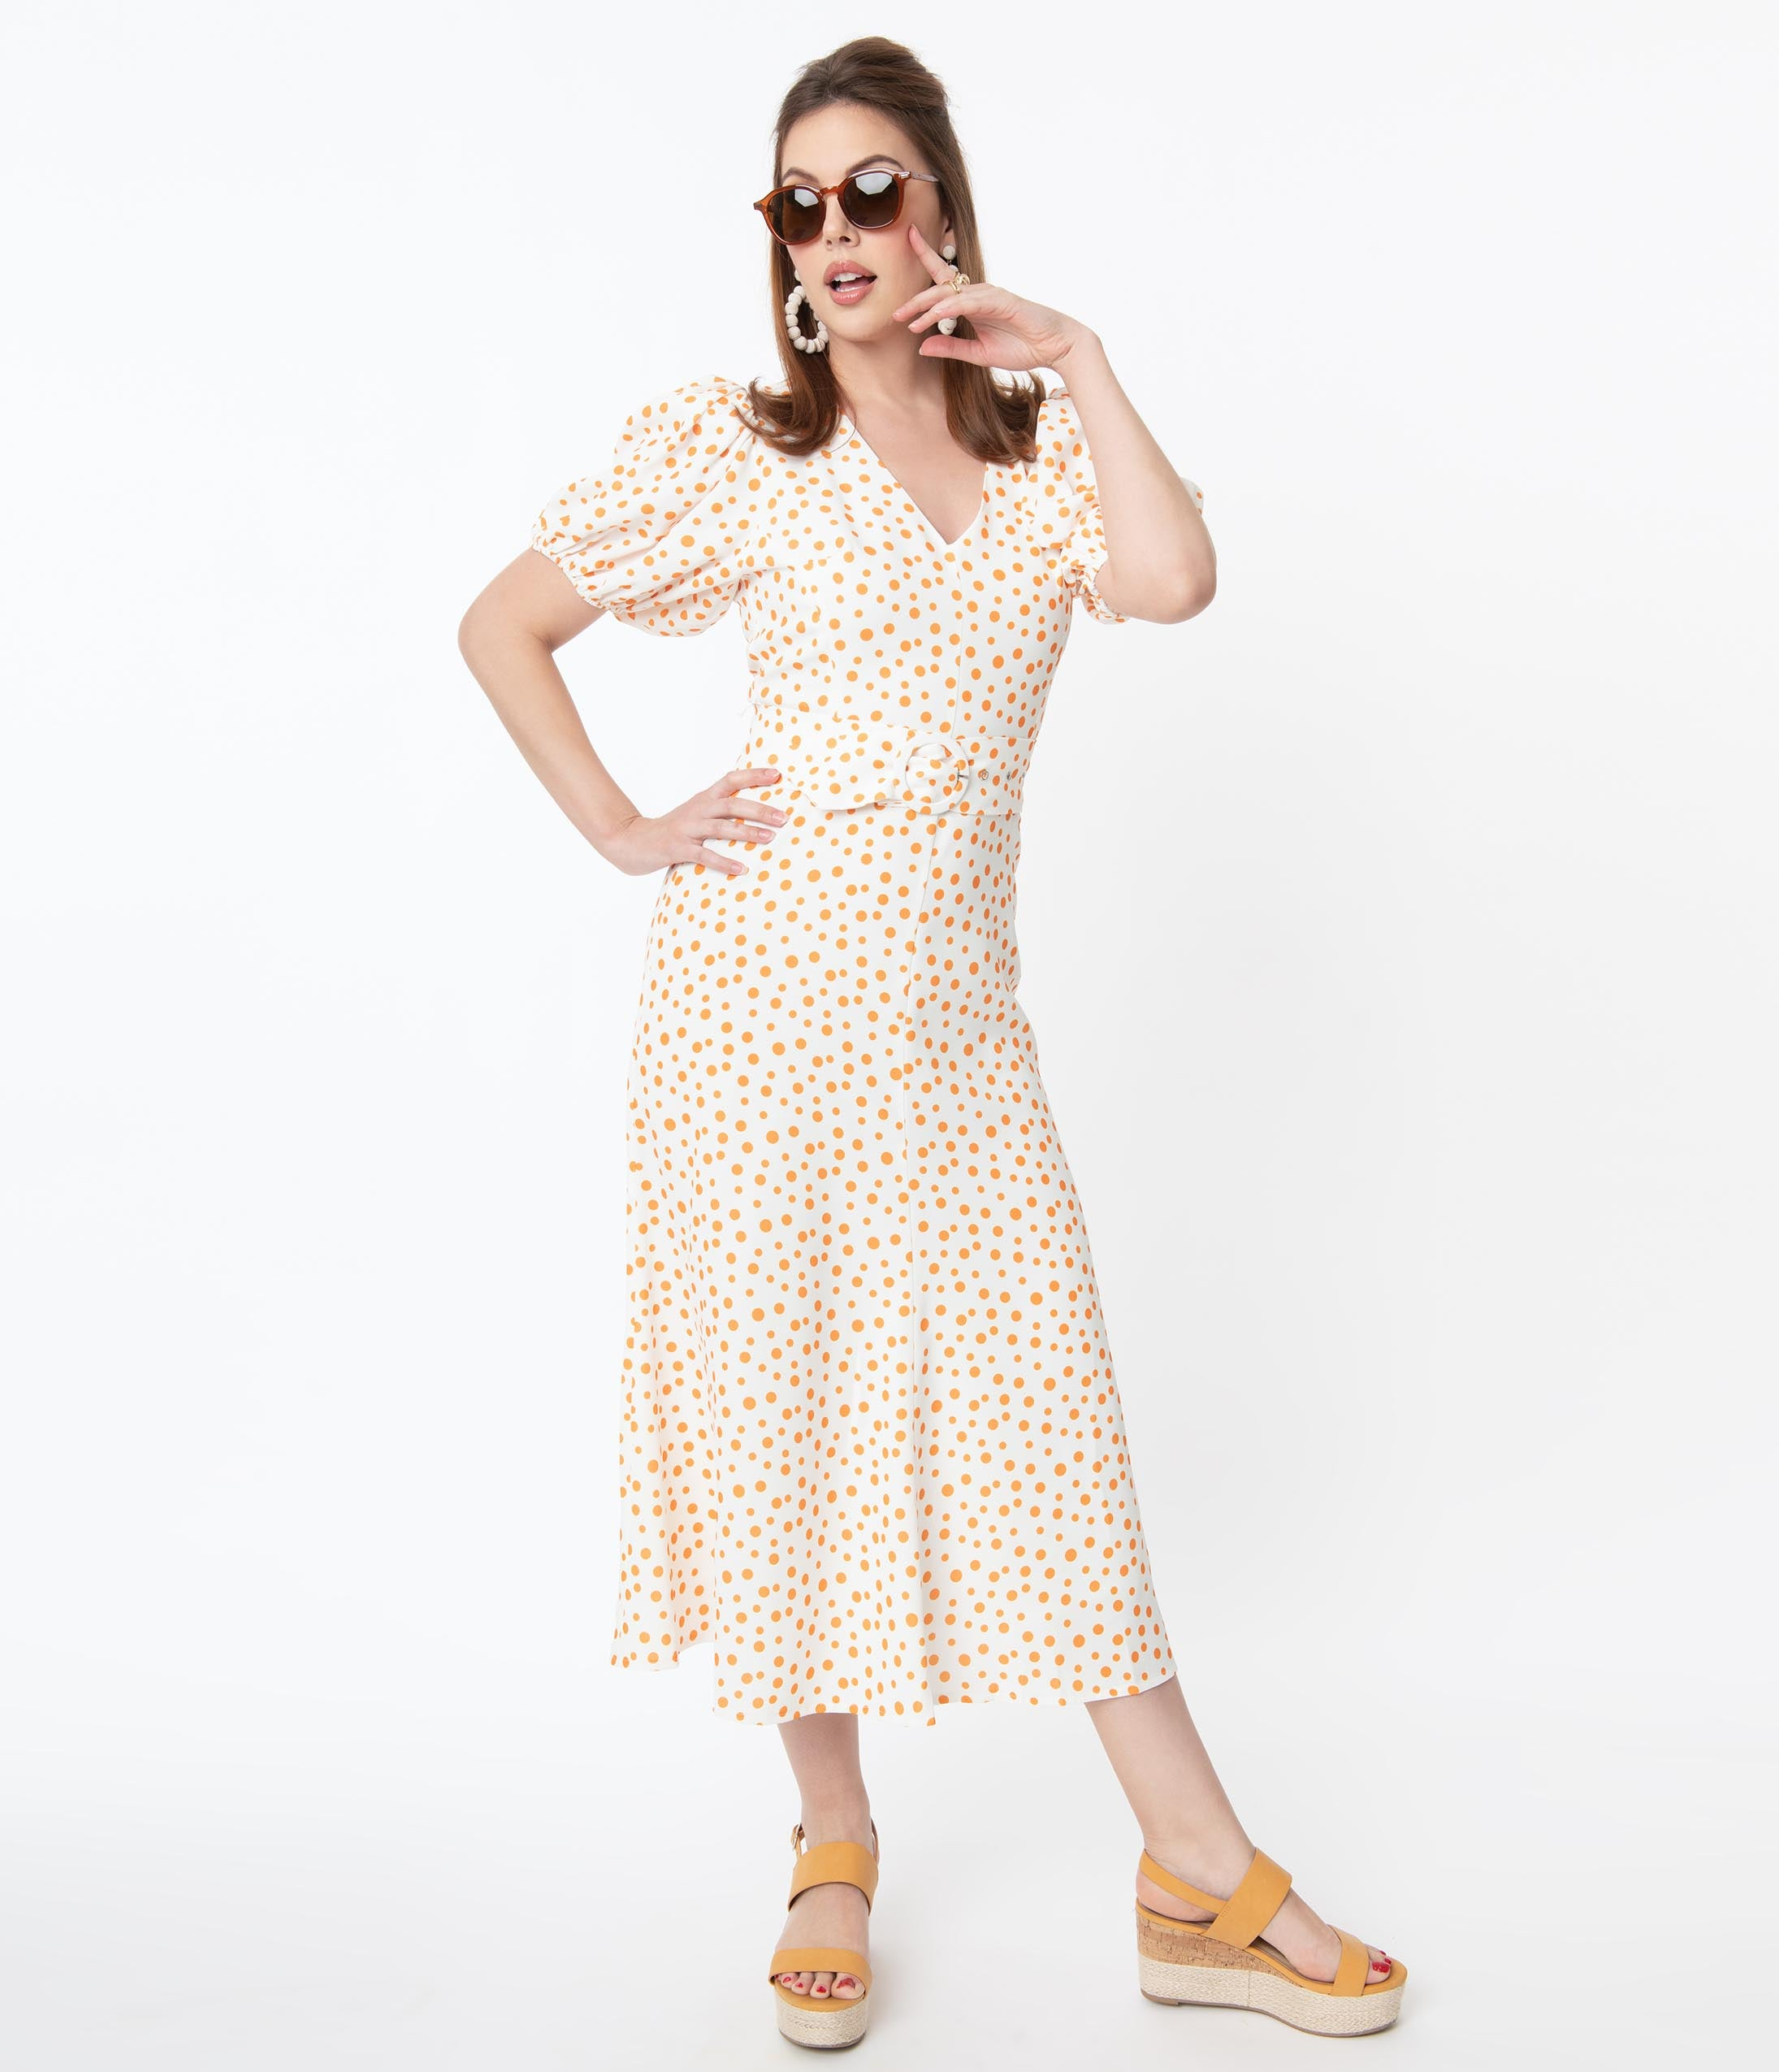 Plus Size Polka Dot Dresses – Vintage 40s, 50s, 60s, 70s Dresses Off White  Orange Polka Dot Catherine Maxi Dress $98.00 AT vintagedancer.com